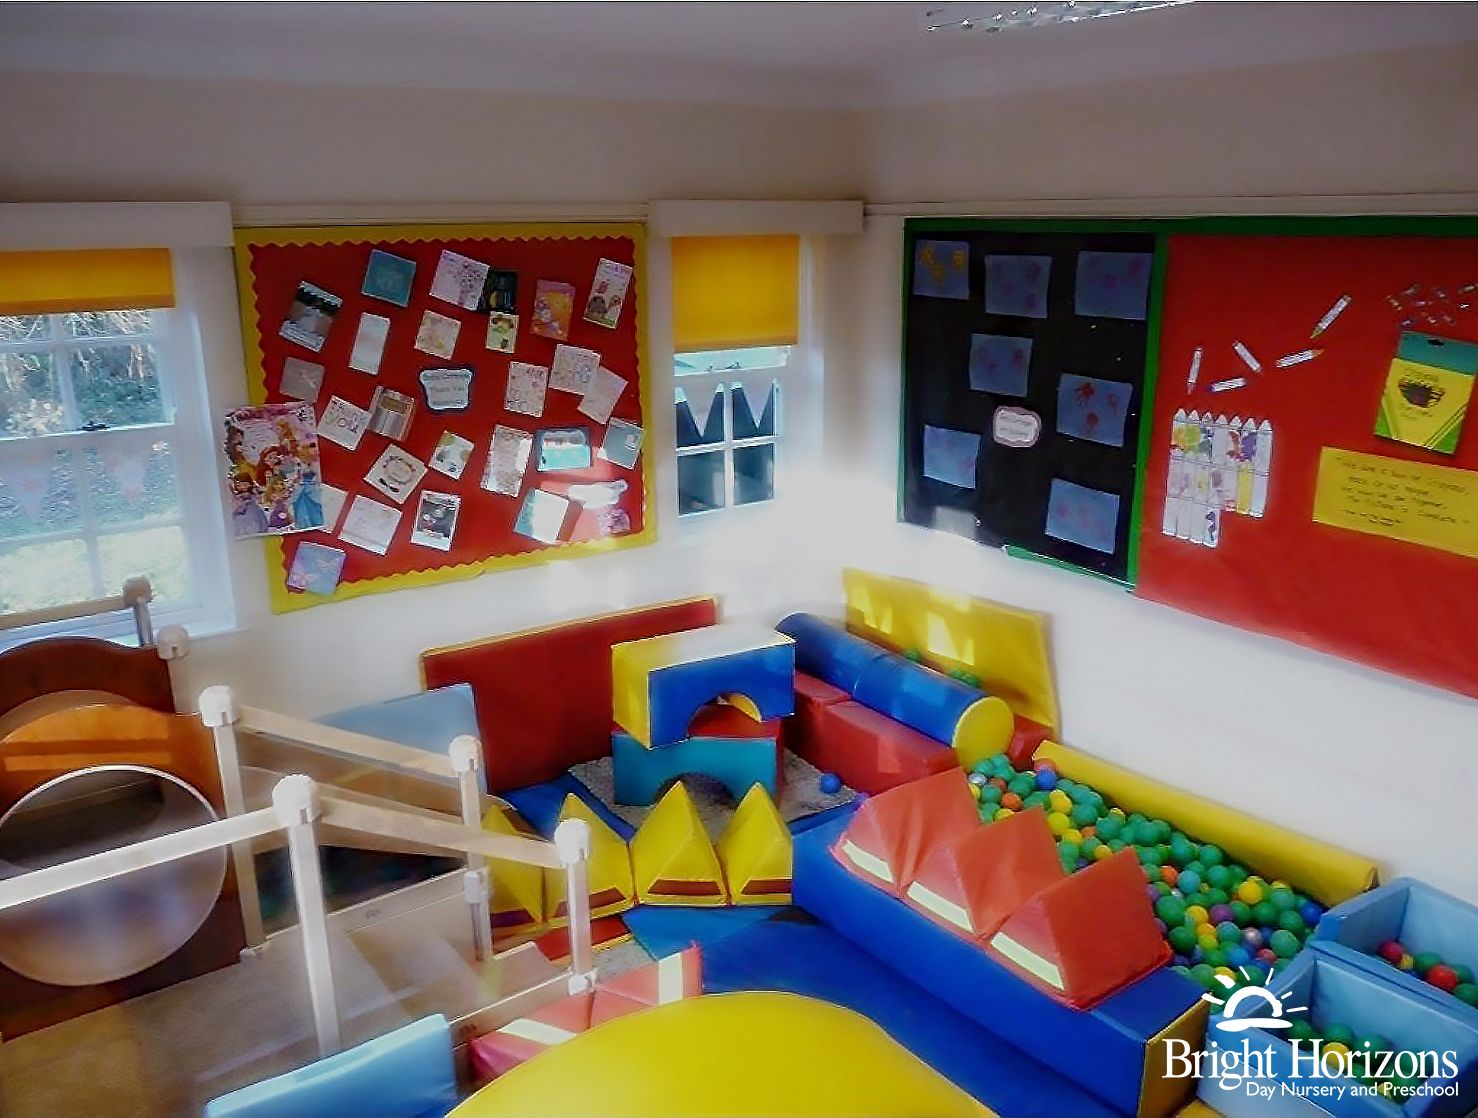 Phoenix Day Nursery In Bwood Provides Large Ious